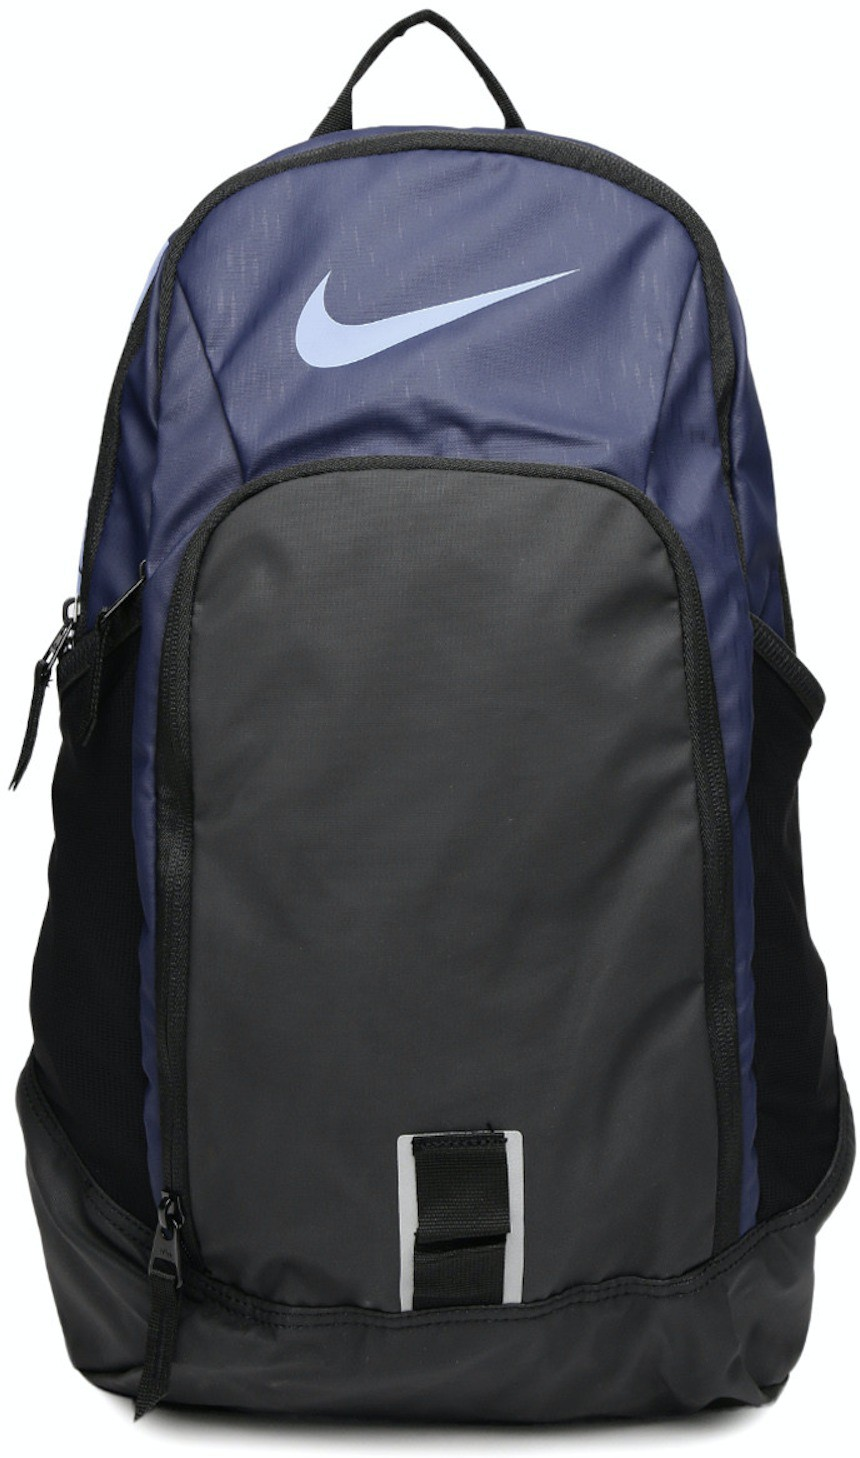 Deals - Chennai - Nike, Roadster... <br> Backpacks<br> Category - bags_wallets_belts<br> Business - Flipkart.com